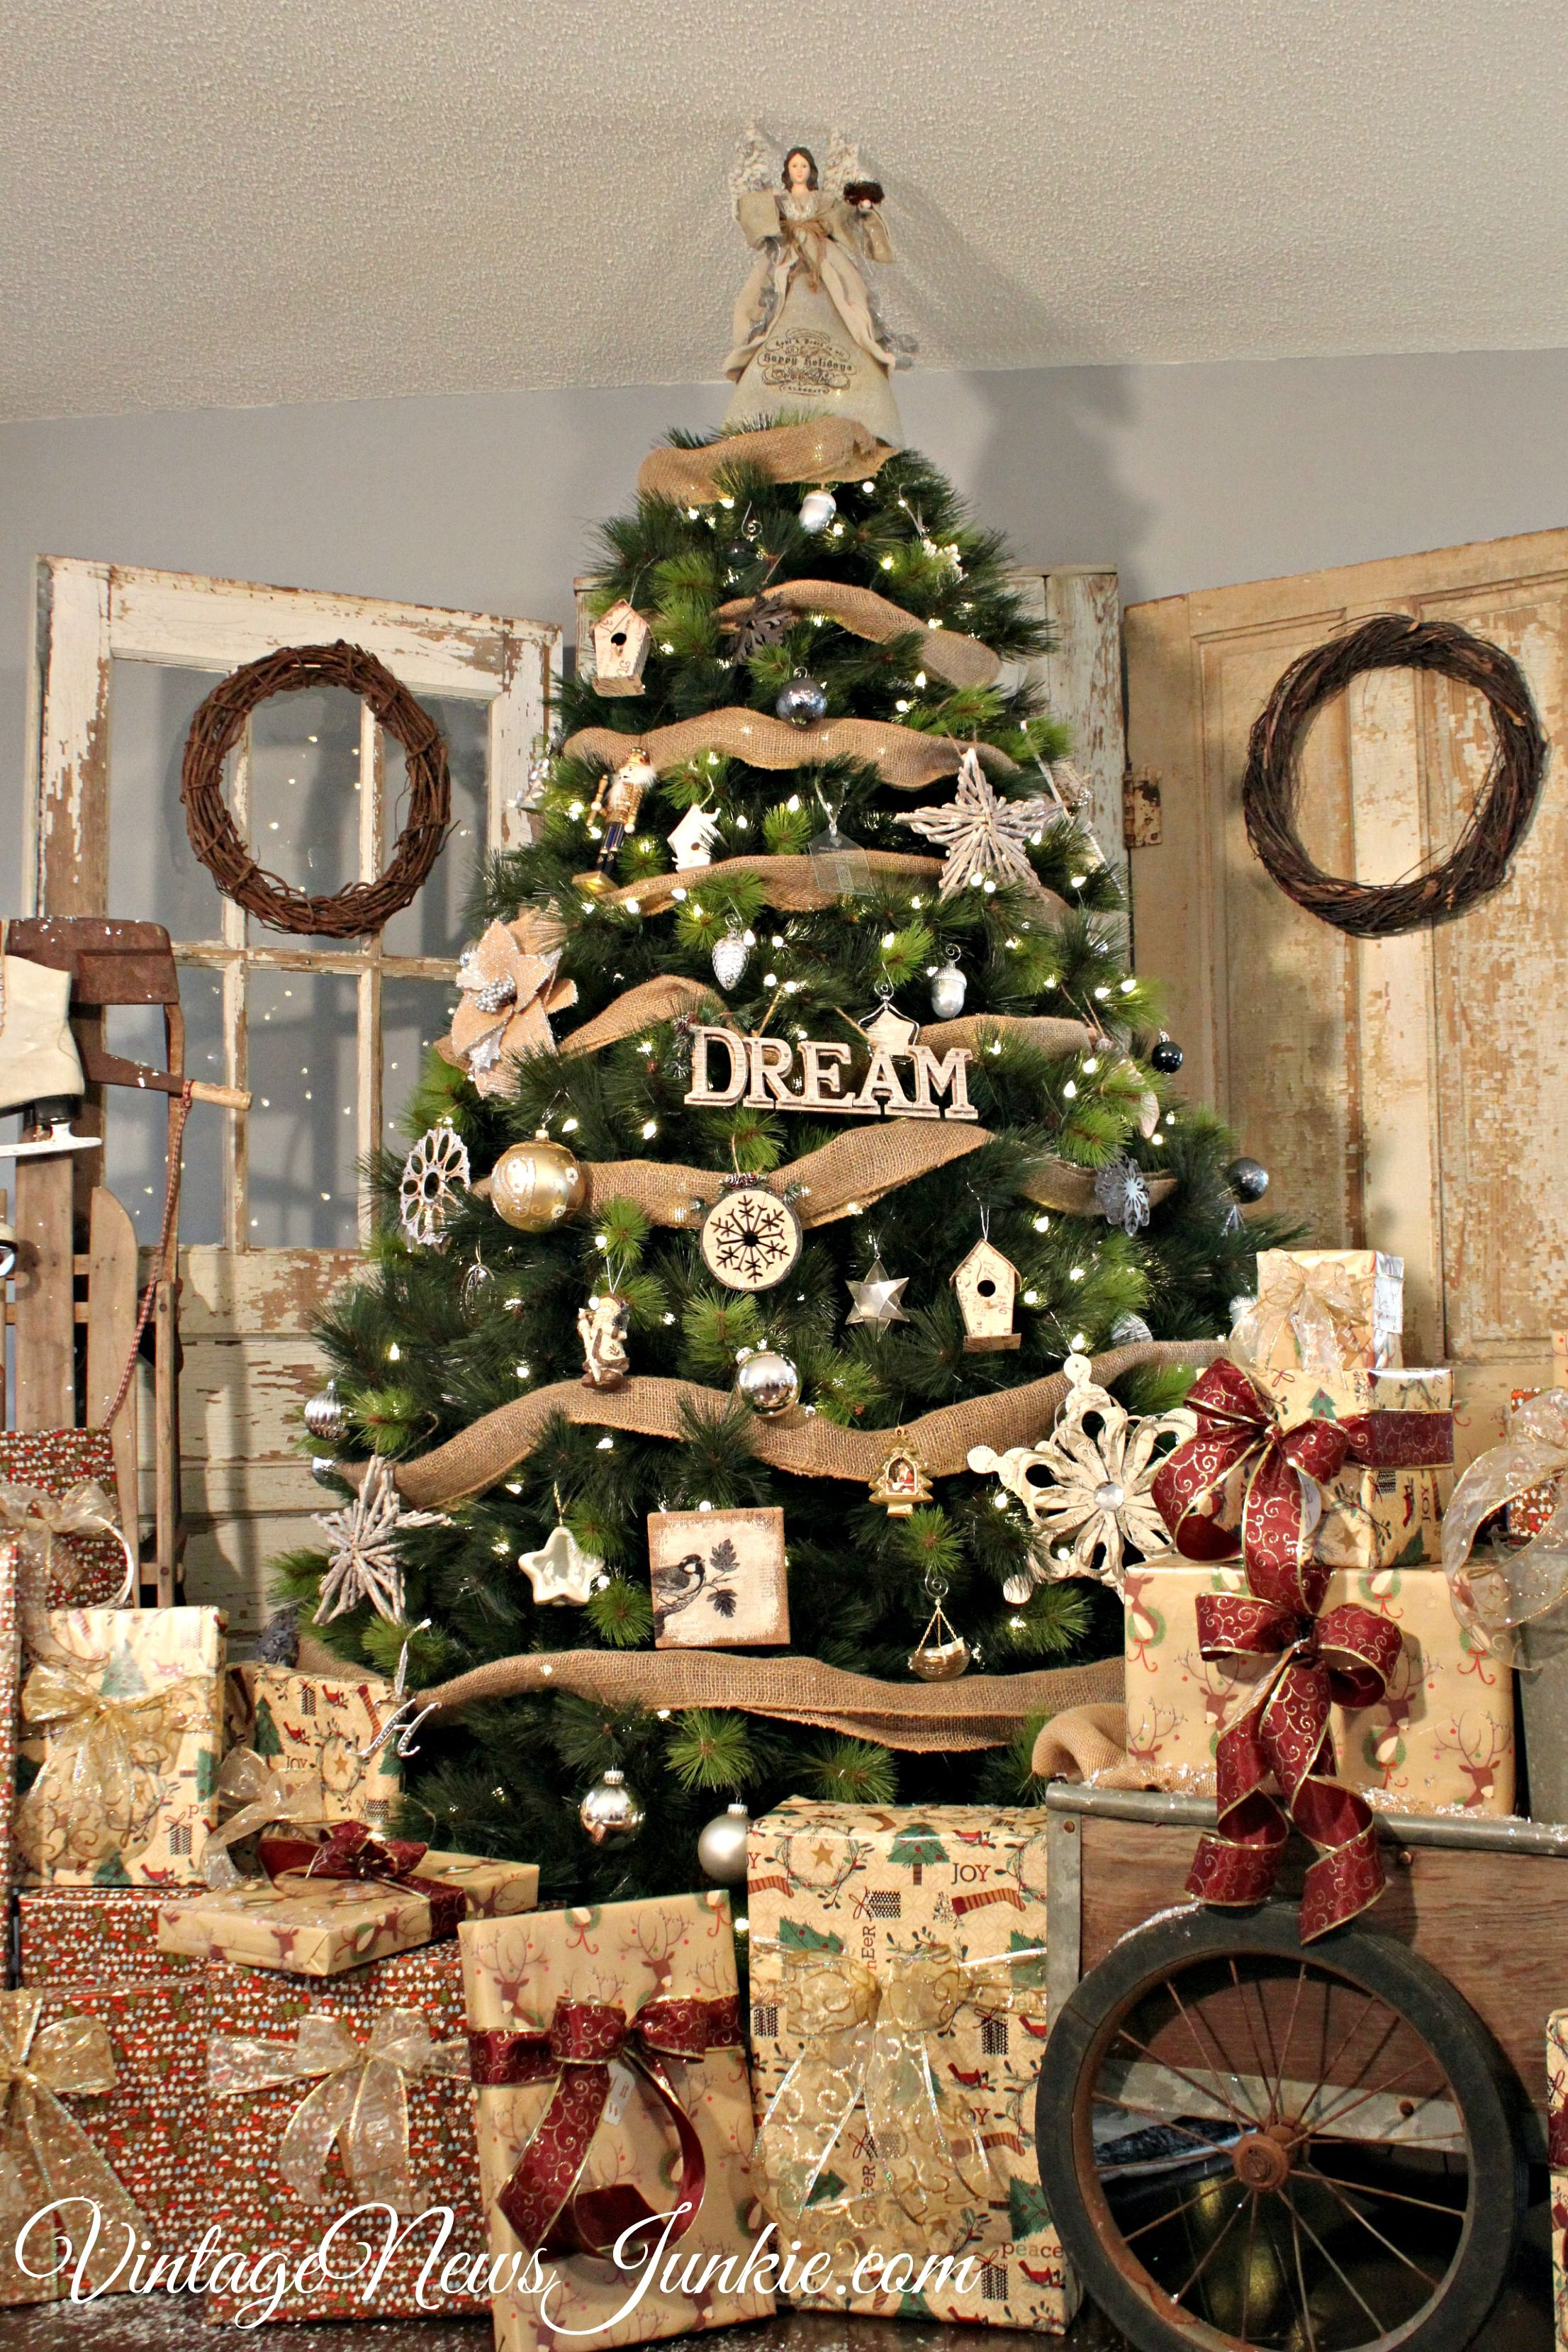 Vintage Rustic Christmas Tree With Old Doors ChristmasTree Holiday OldDoors By News